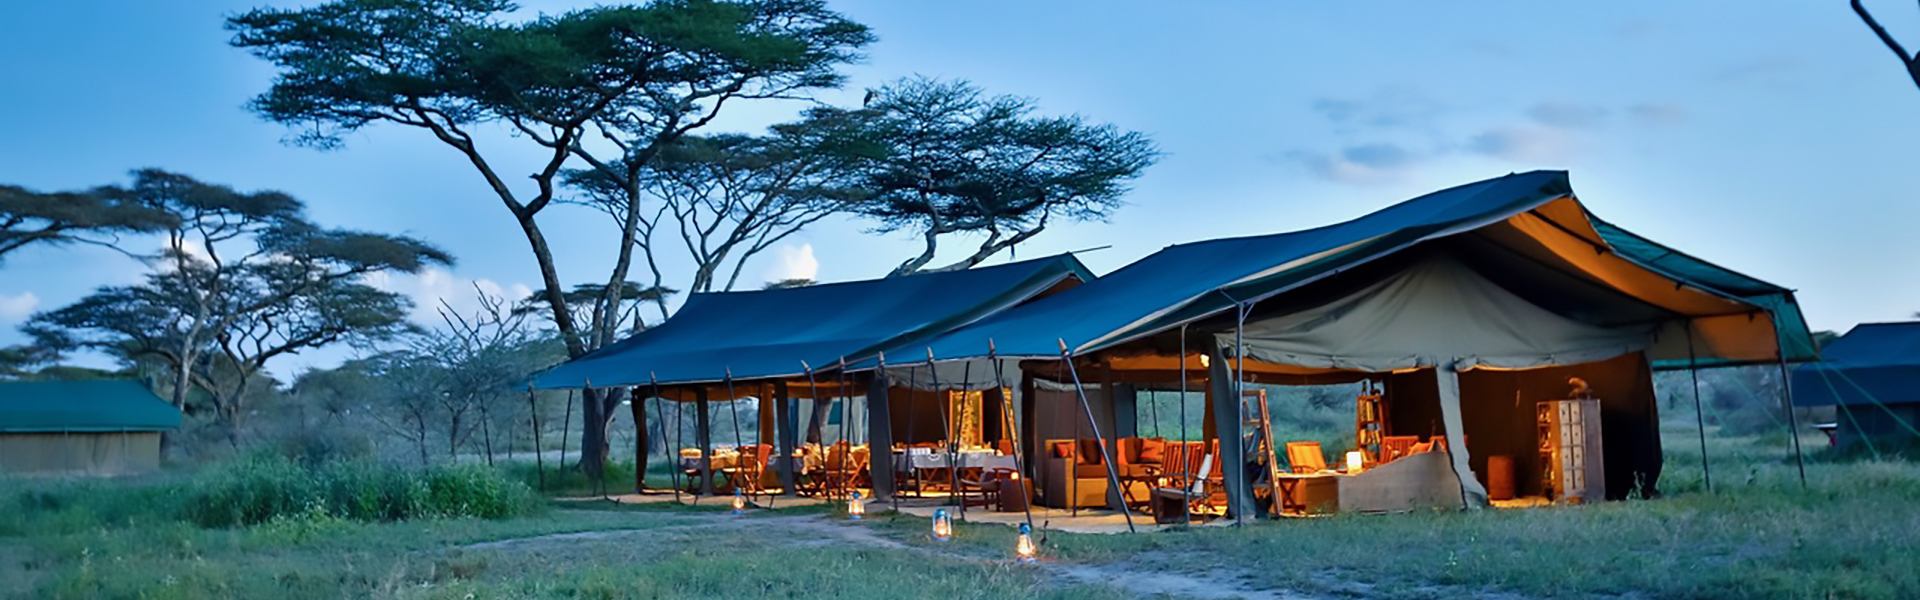 Luxury accommodation and campsite in Tanzania